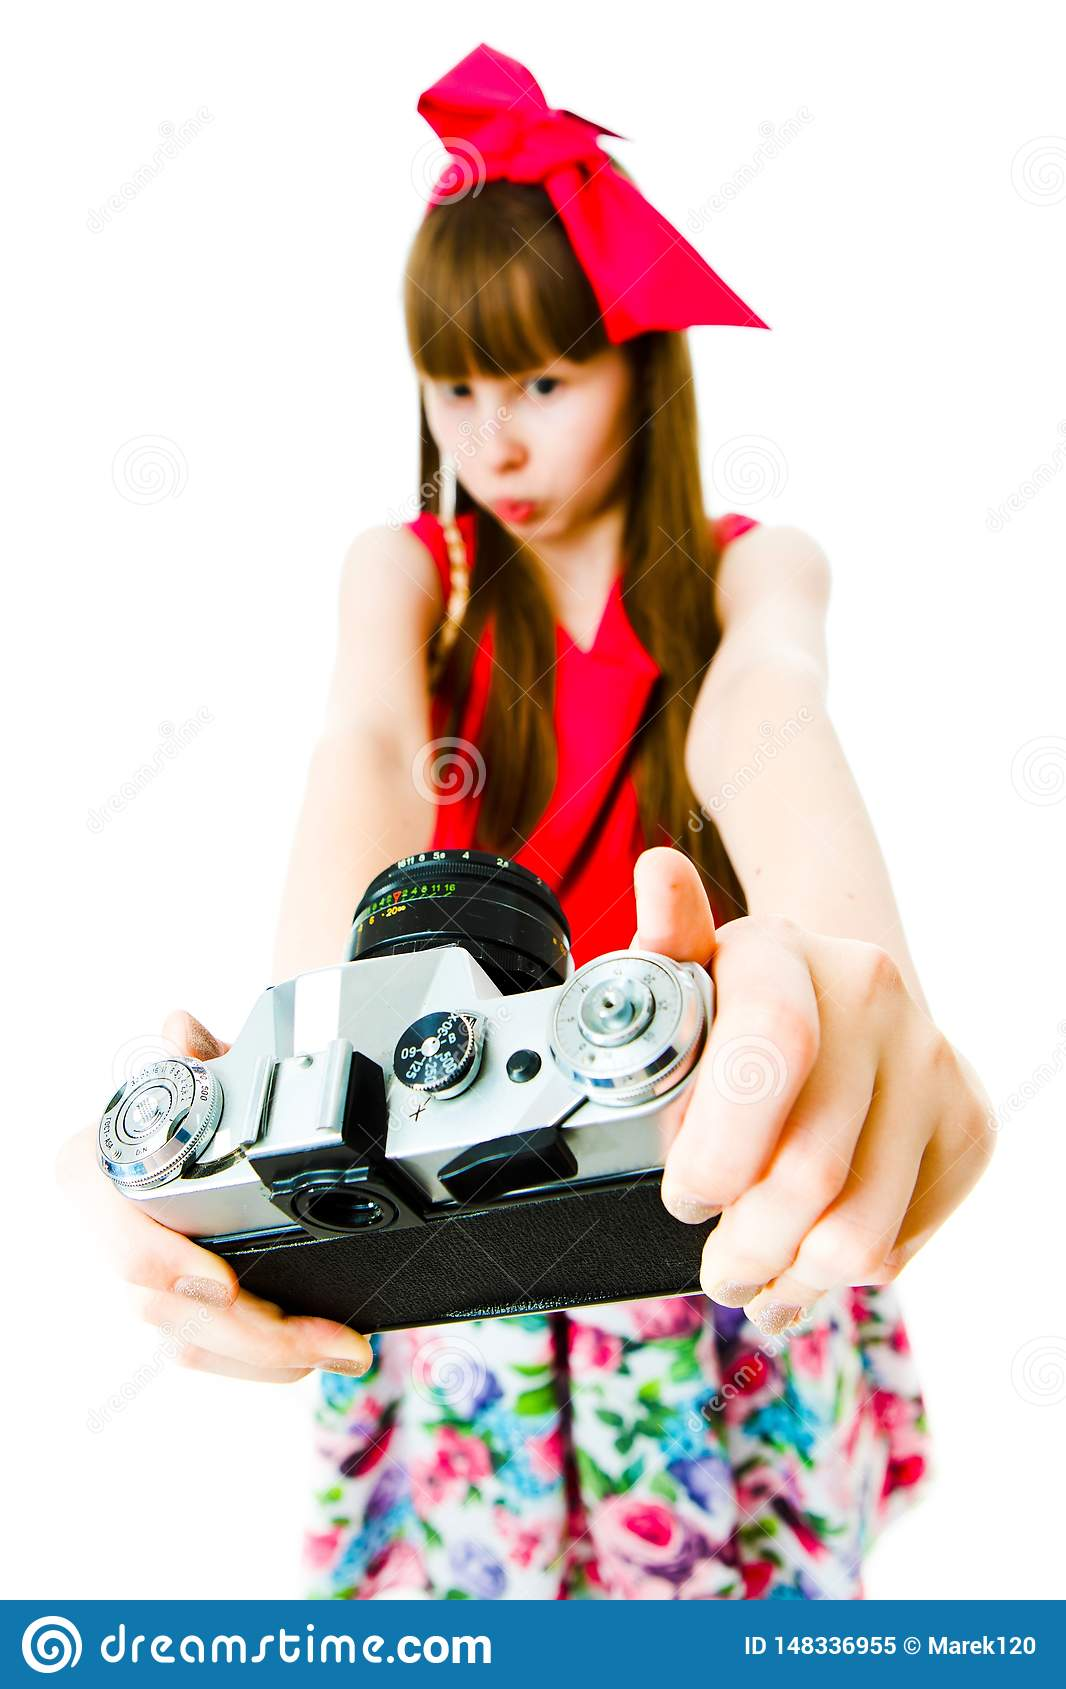 Young girl in magenta dress and ribbon in hairs taking selfie - vintage camera